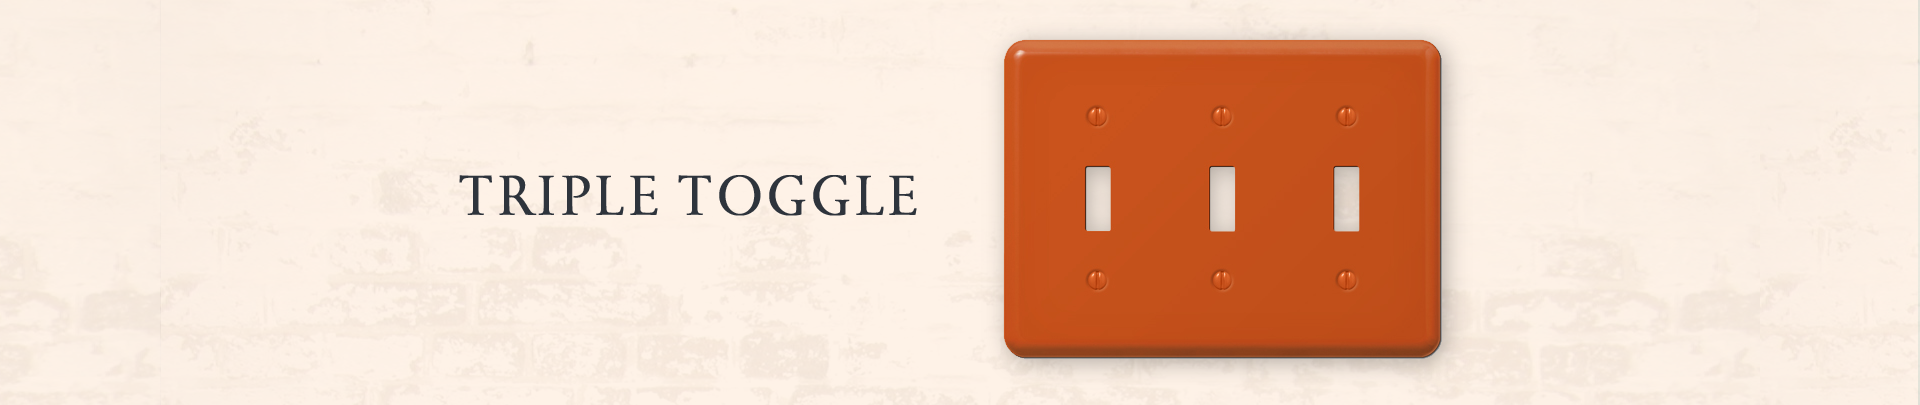 switchplates-triple-toggle.png